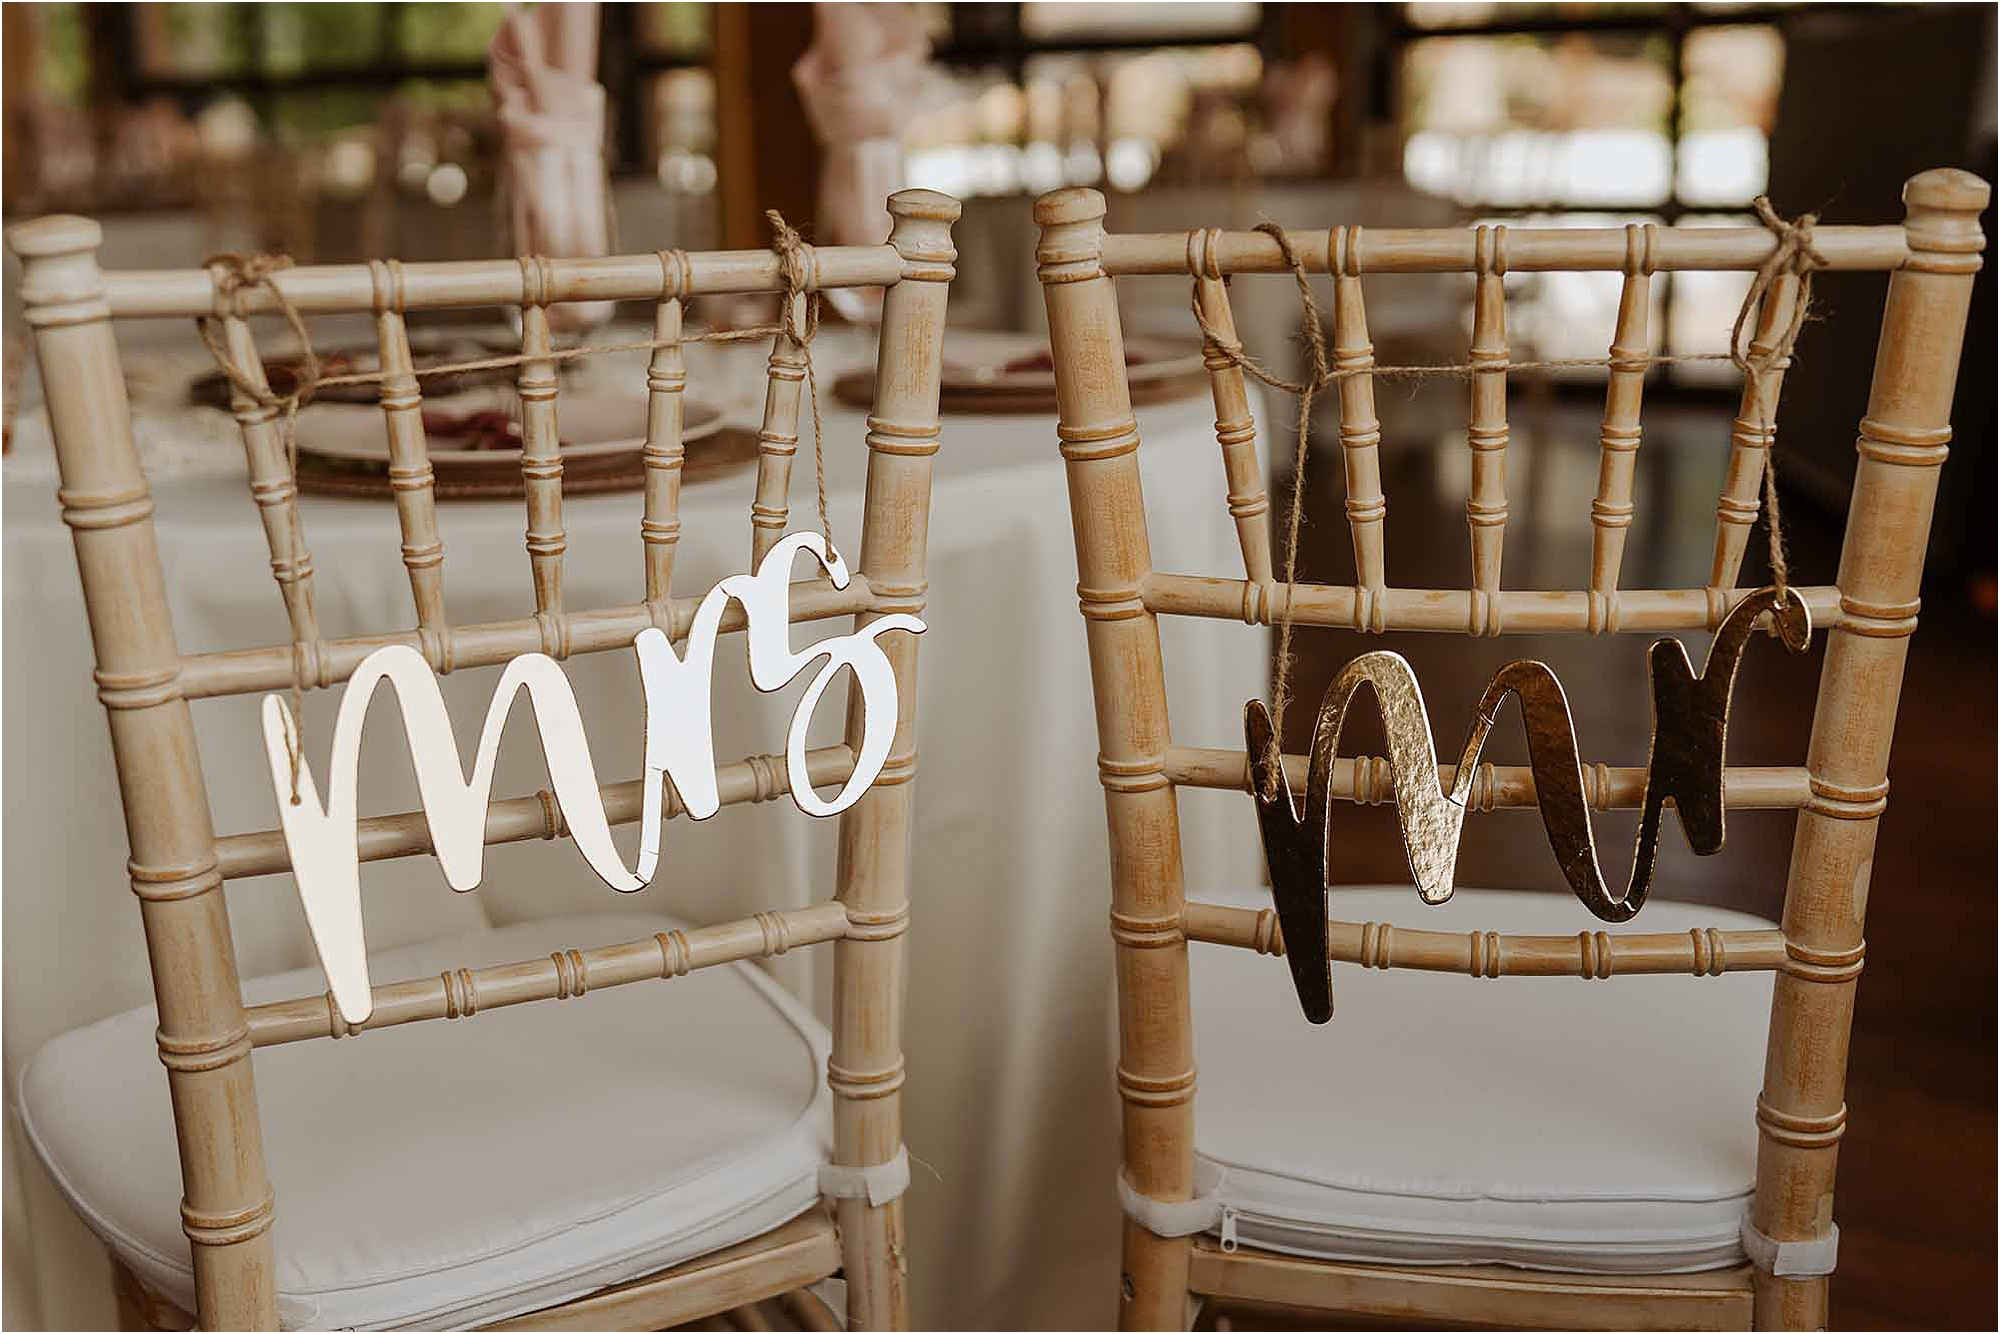 Mr. and Mrs. chairback signs